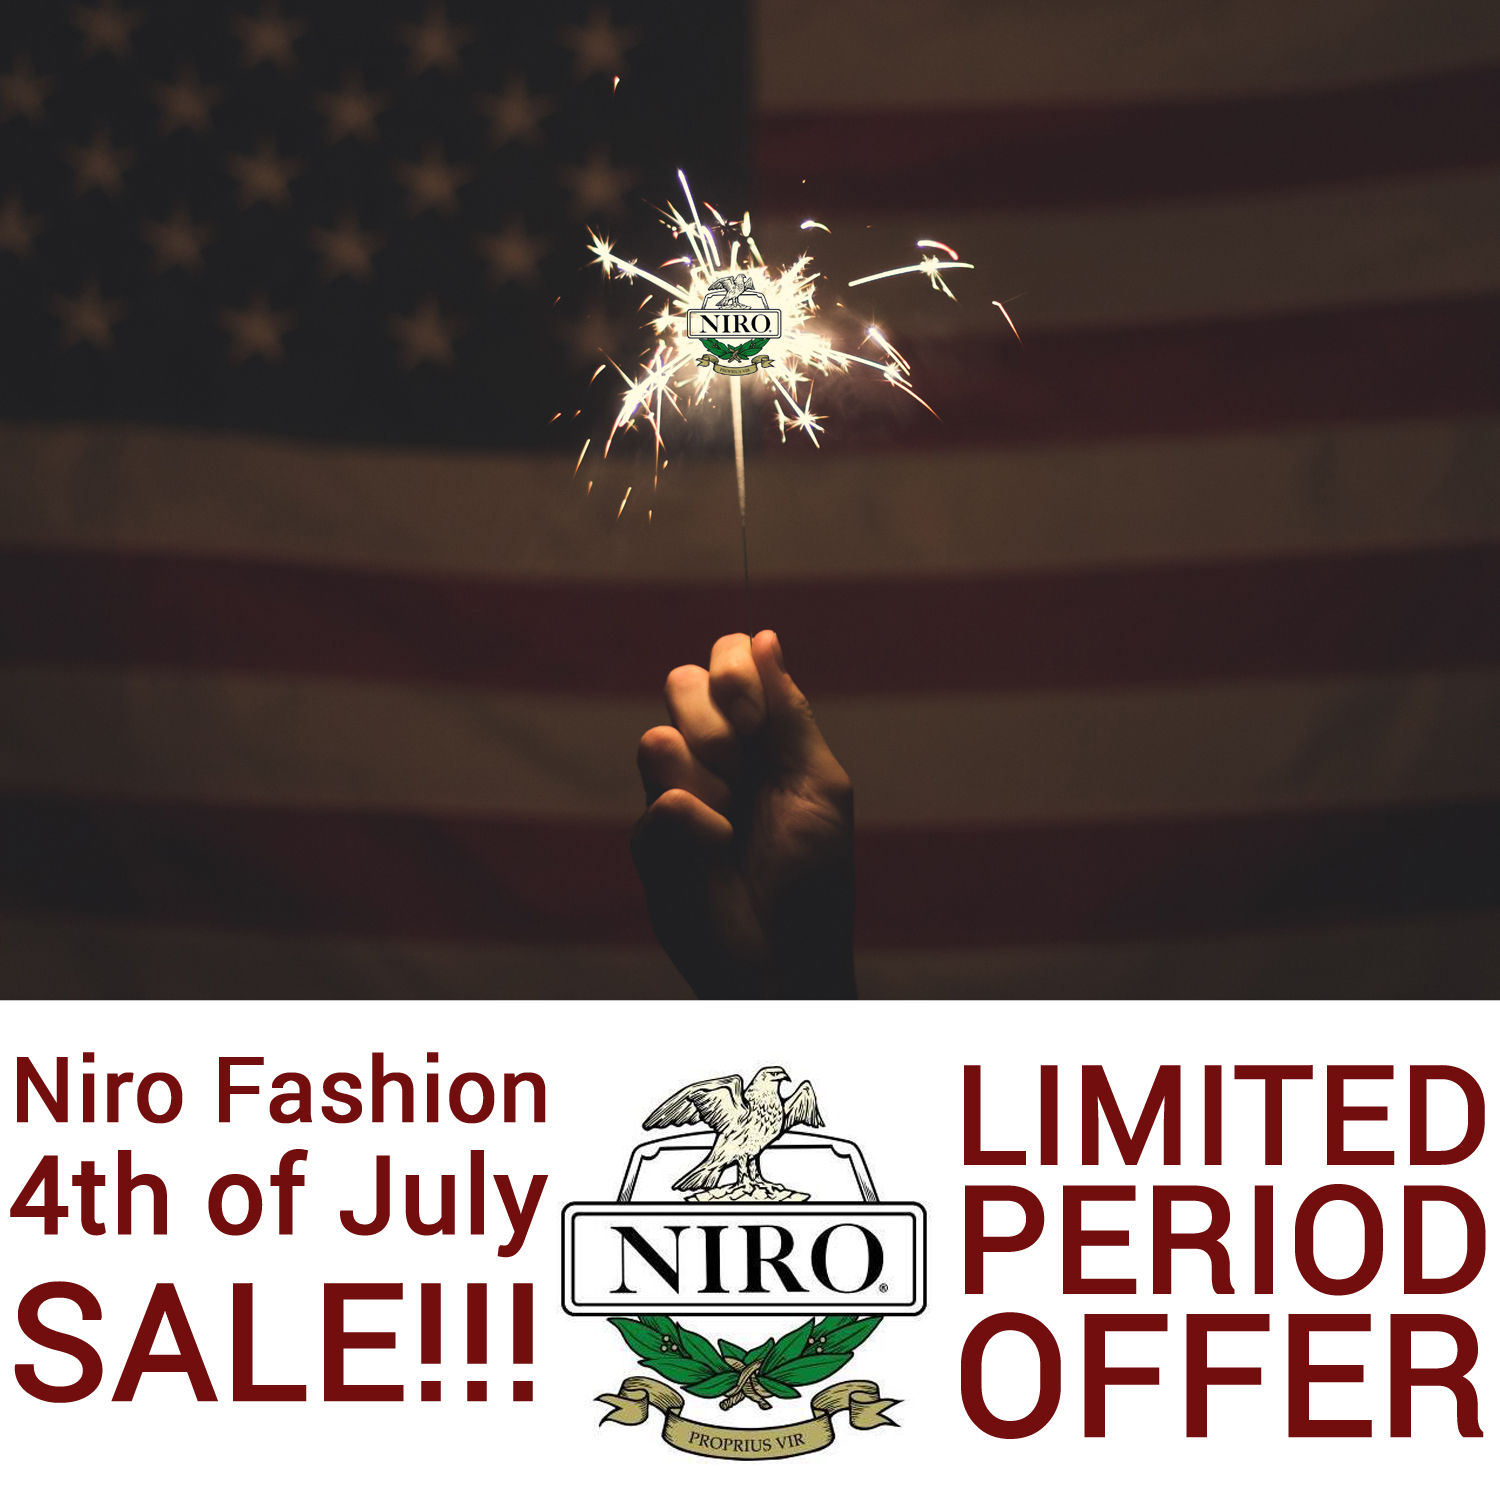 Niro Fashion Half Price Sale